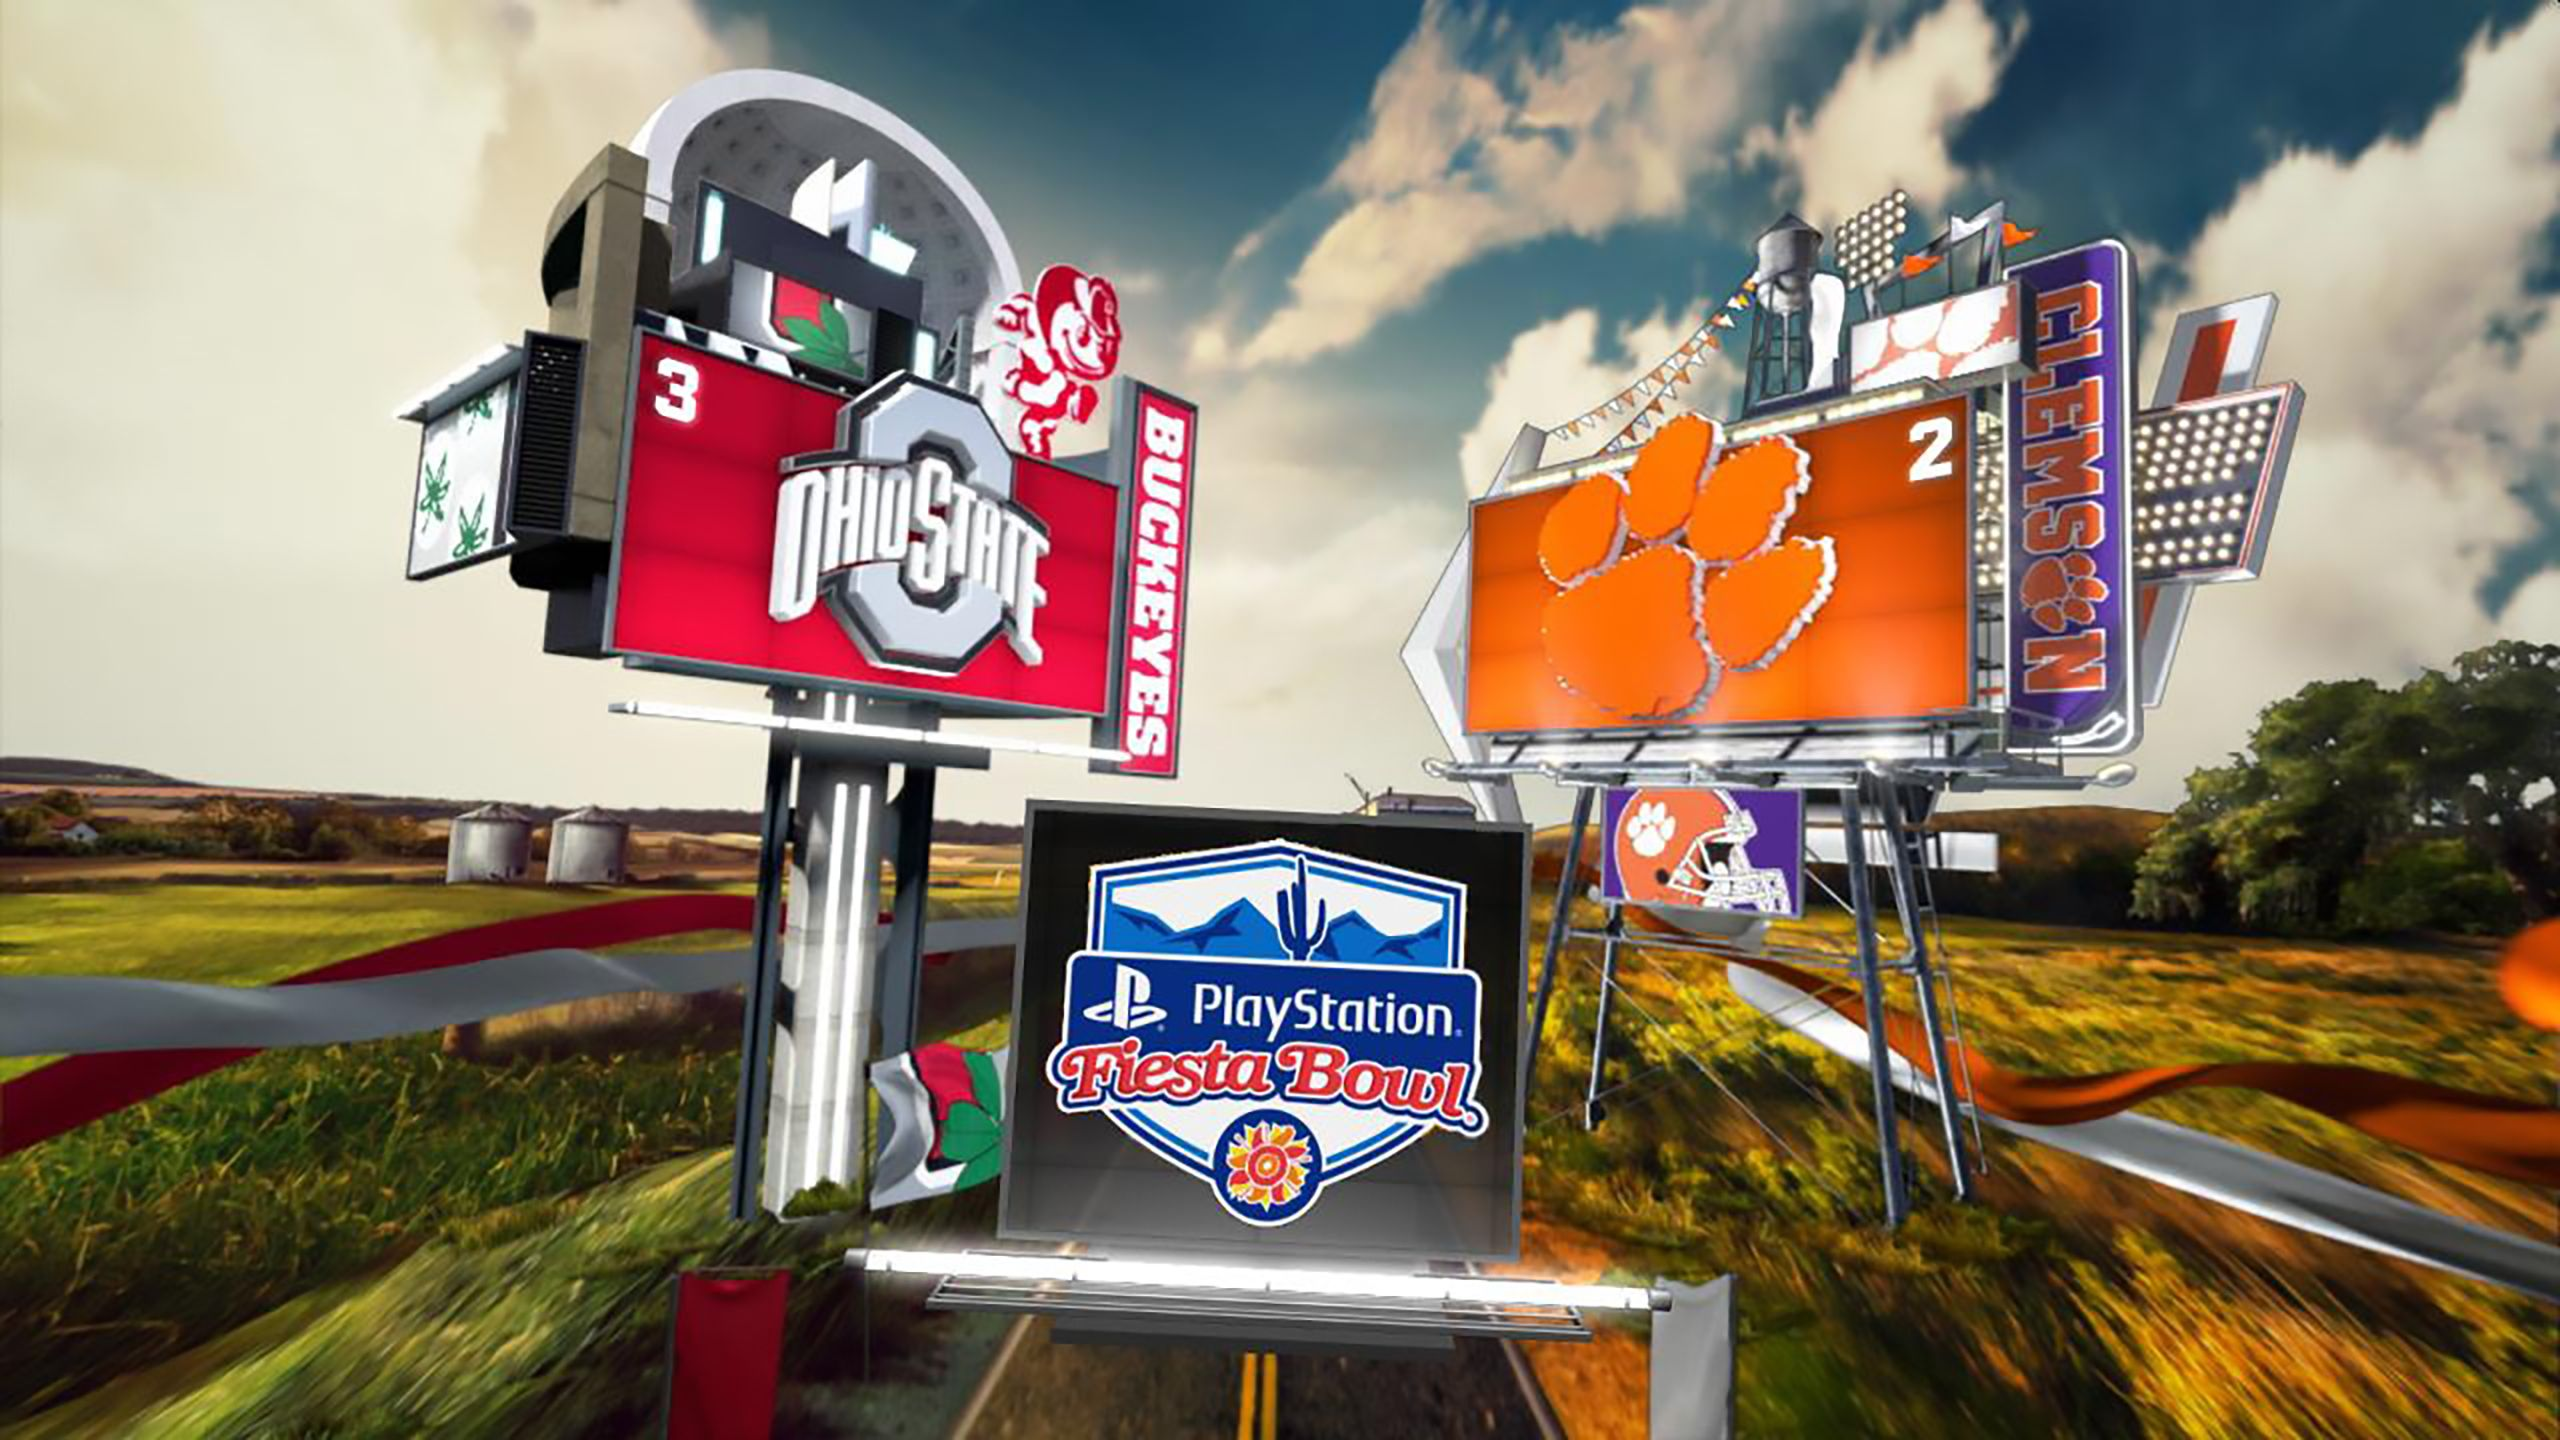 #3 Ohio State vs. #2 Clemson (Semifinal) (Playstation Fiesta Bowl) (re-air)